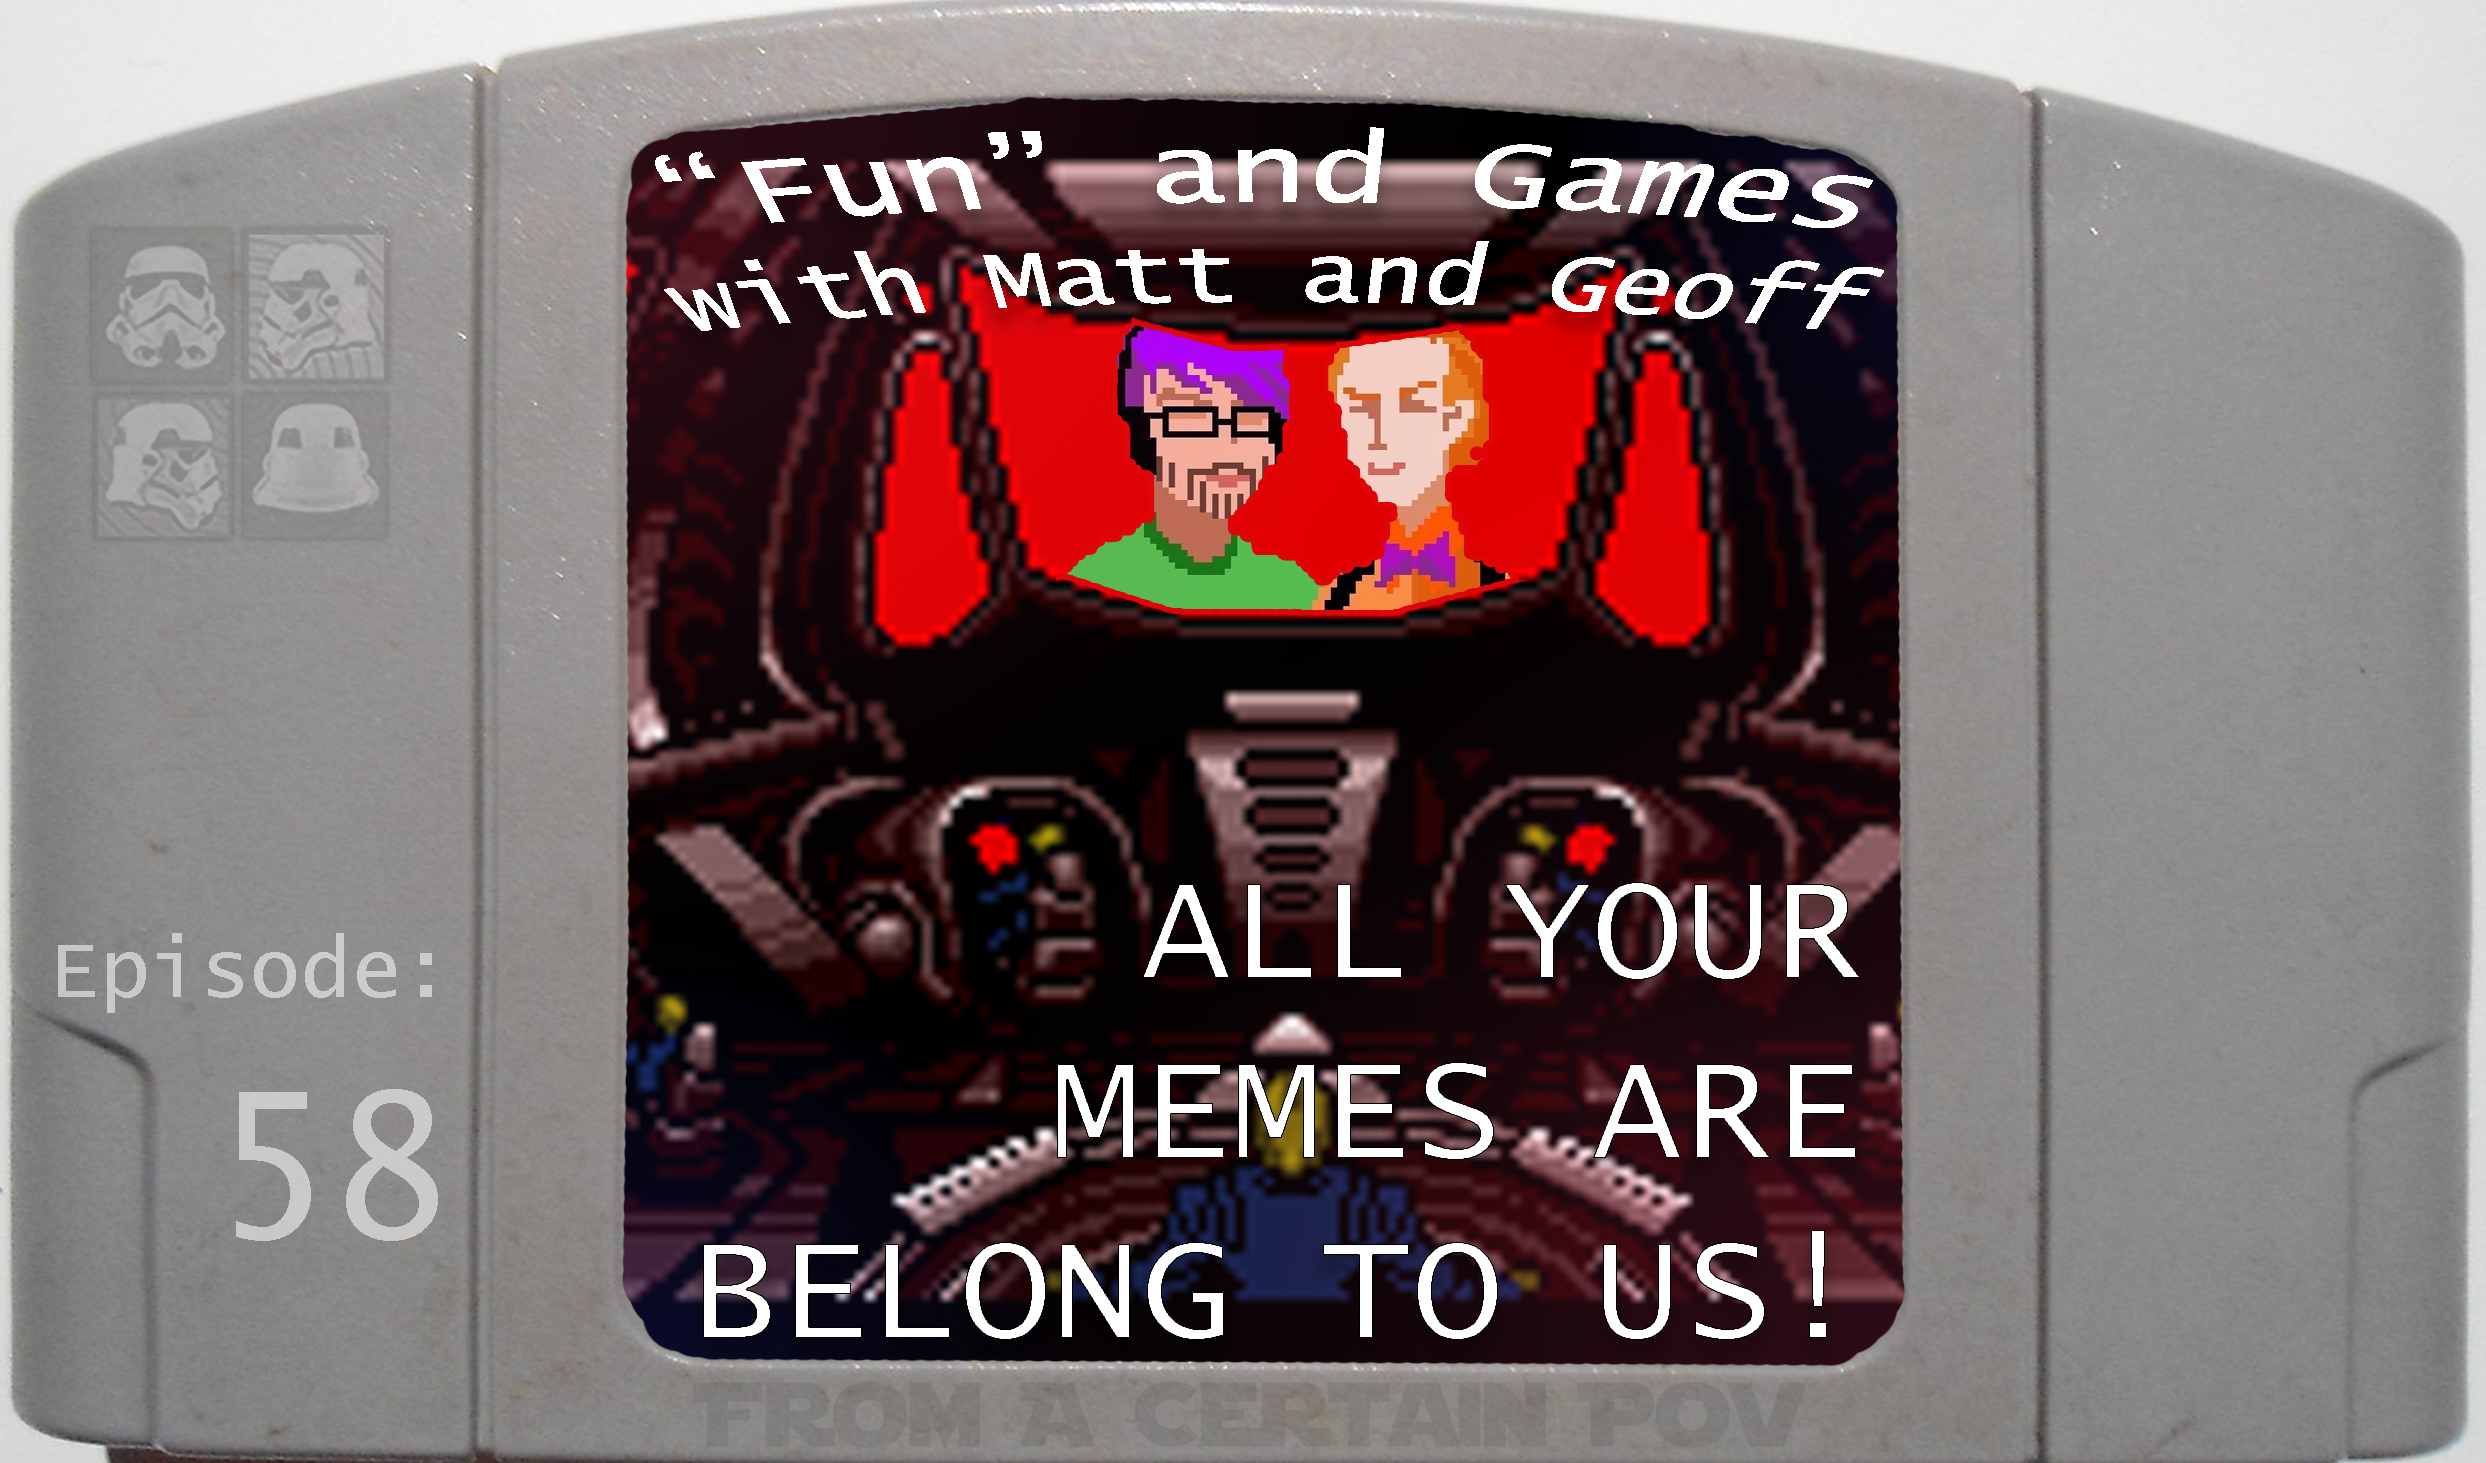 58 - All Your Memes Are Belong To Us.jpg